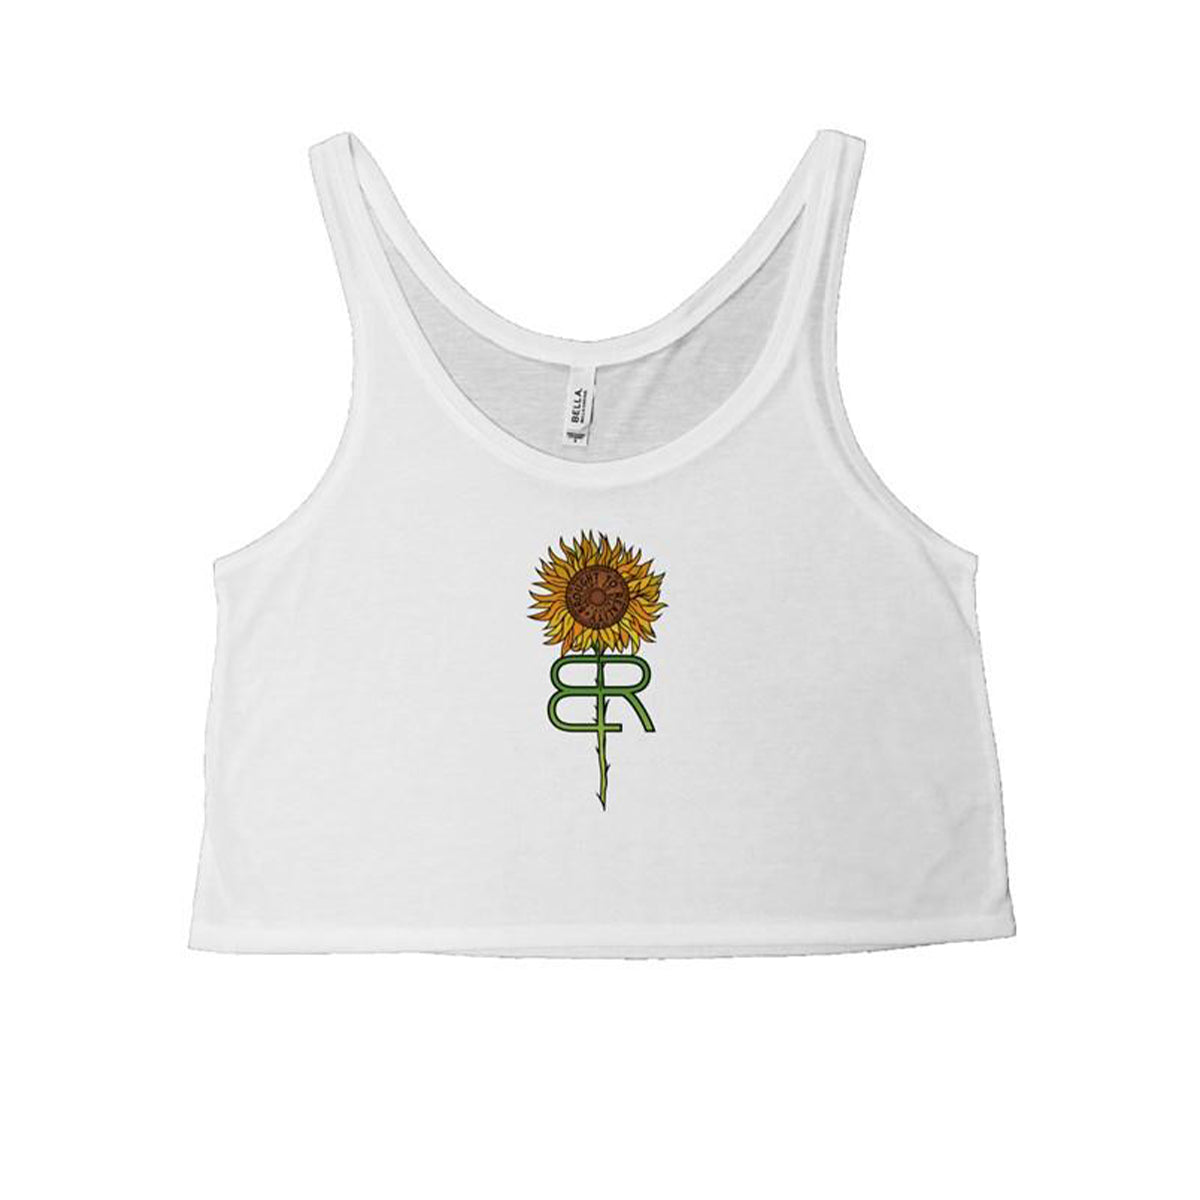 Ryanne's Sunflower of Hope Tank Top